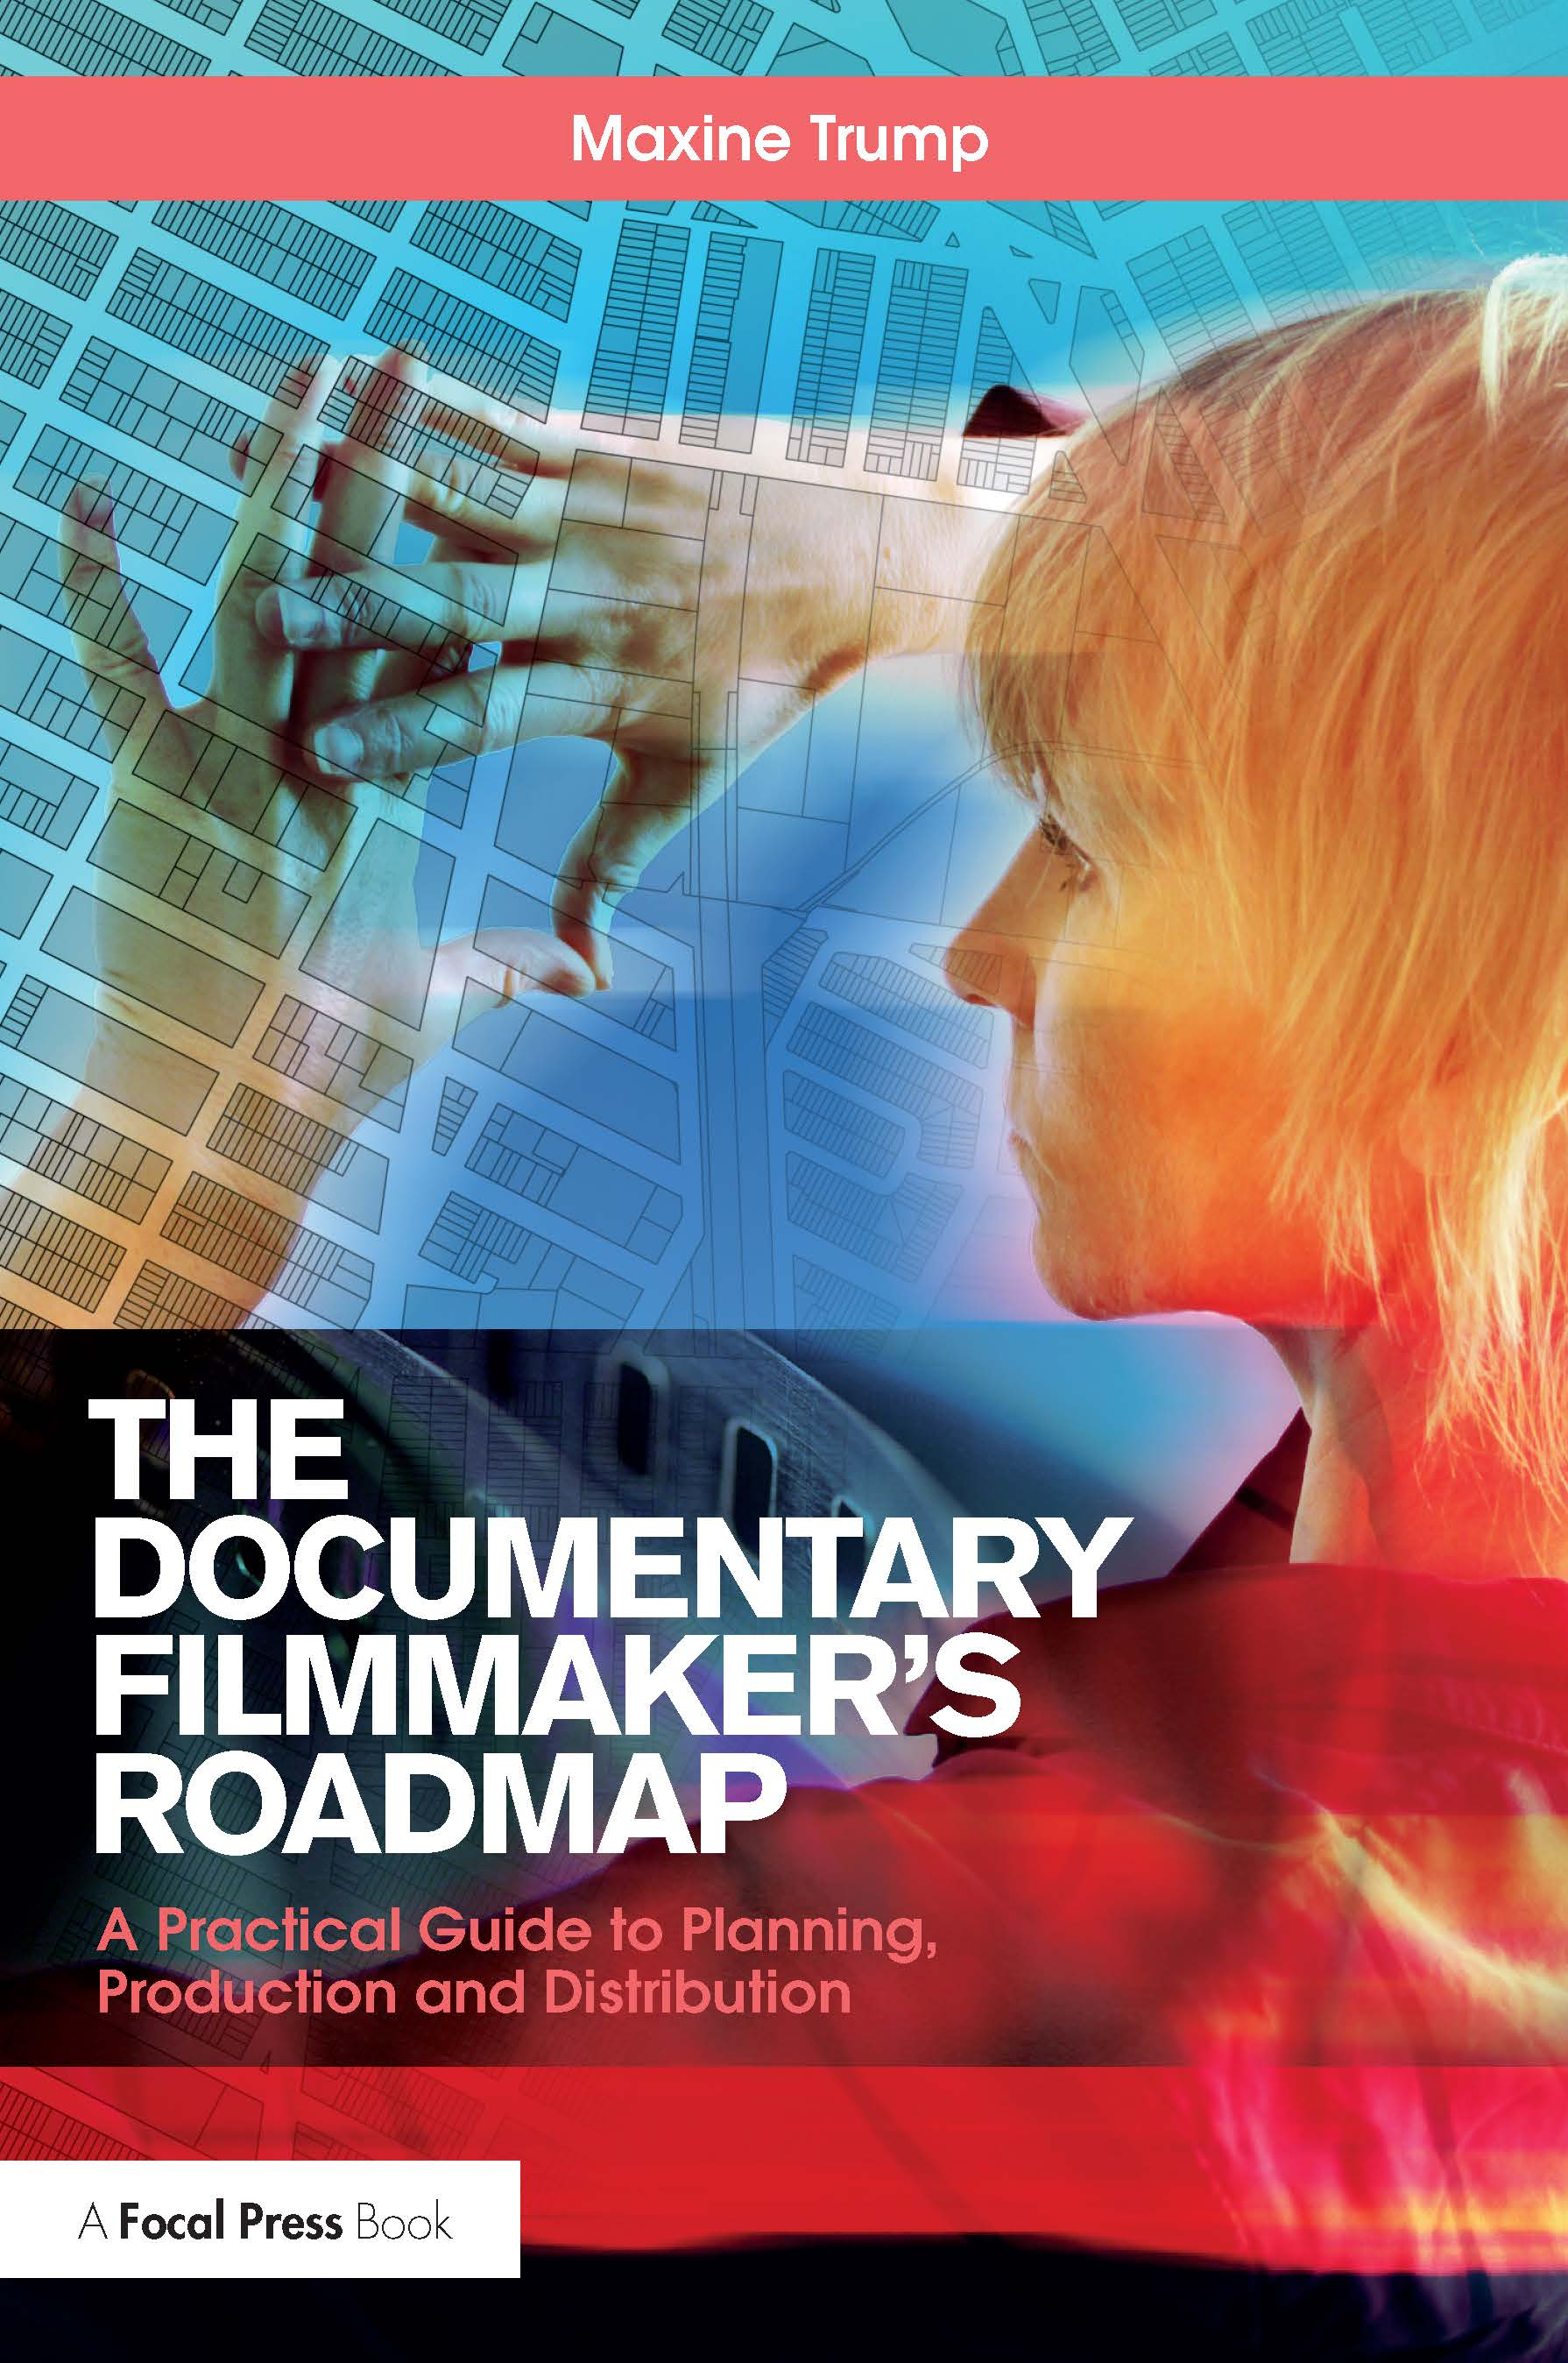 The Documentary Filmmaker's Roadmap: A Practical Guide to Planning, Production and Distribution book cover